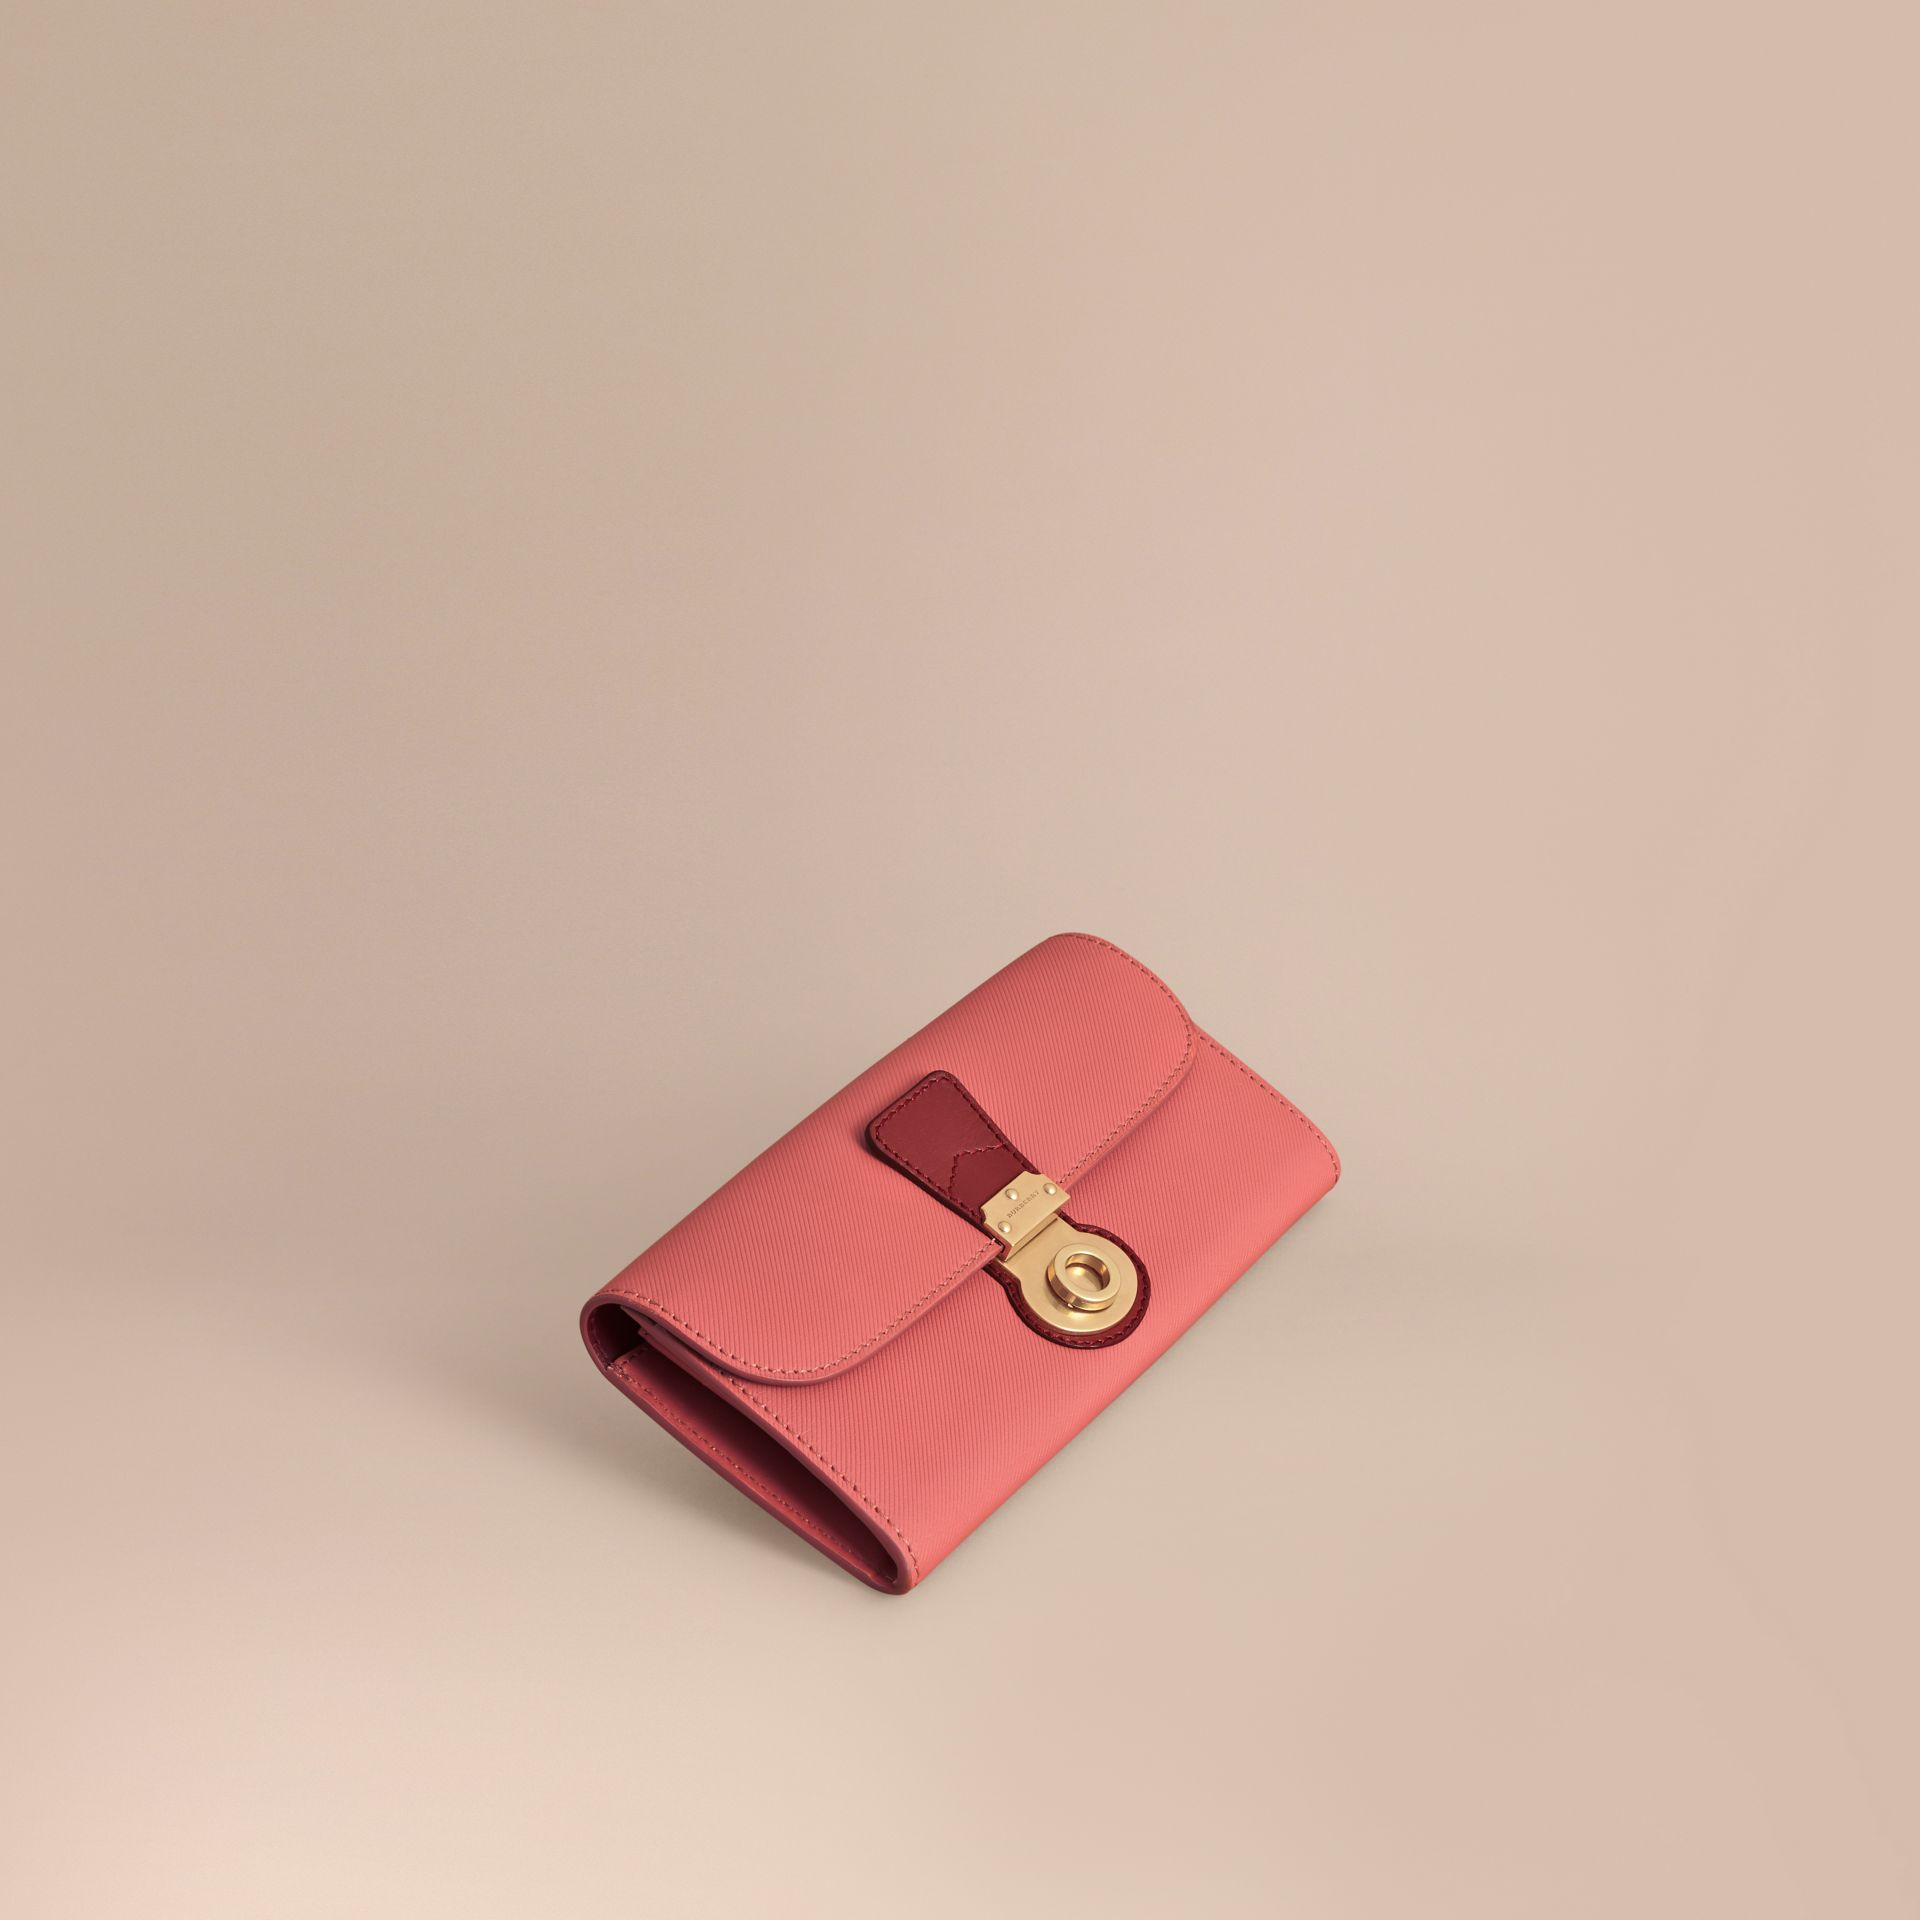 Two-tone Trench Leather Continental Wallet in Blossom Pink/antique Red - Women | Burberry - gallery image 1